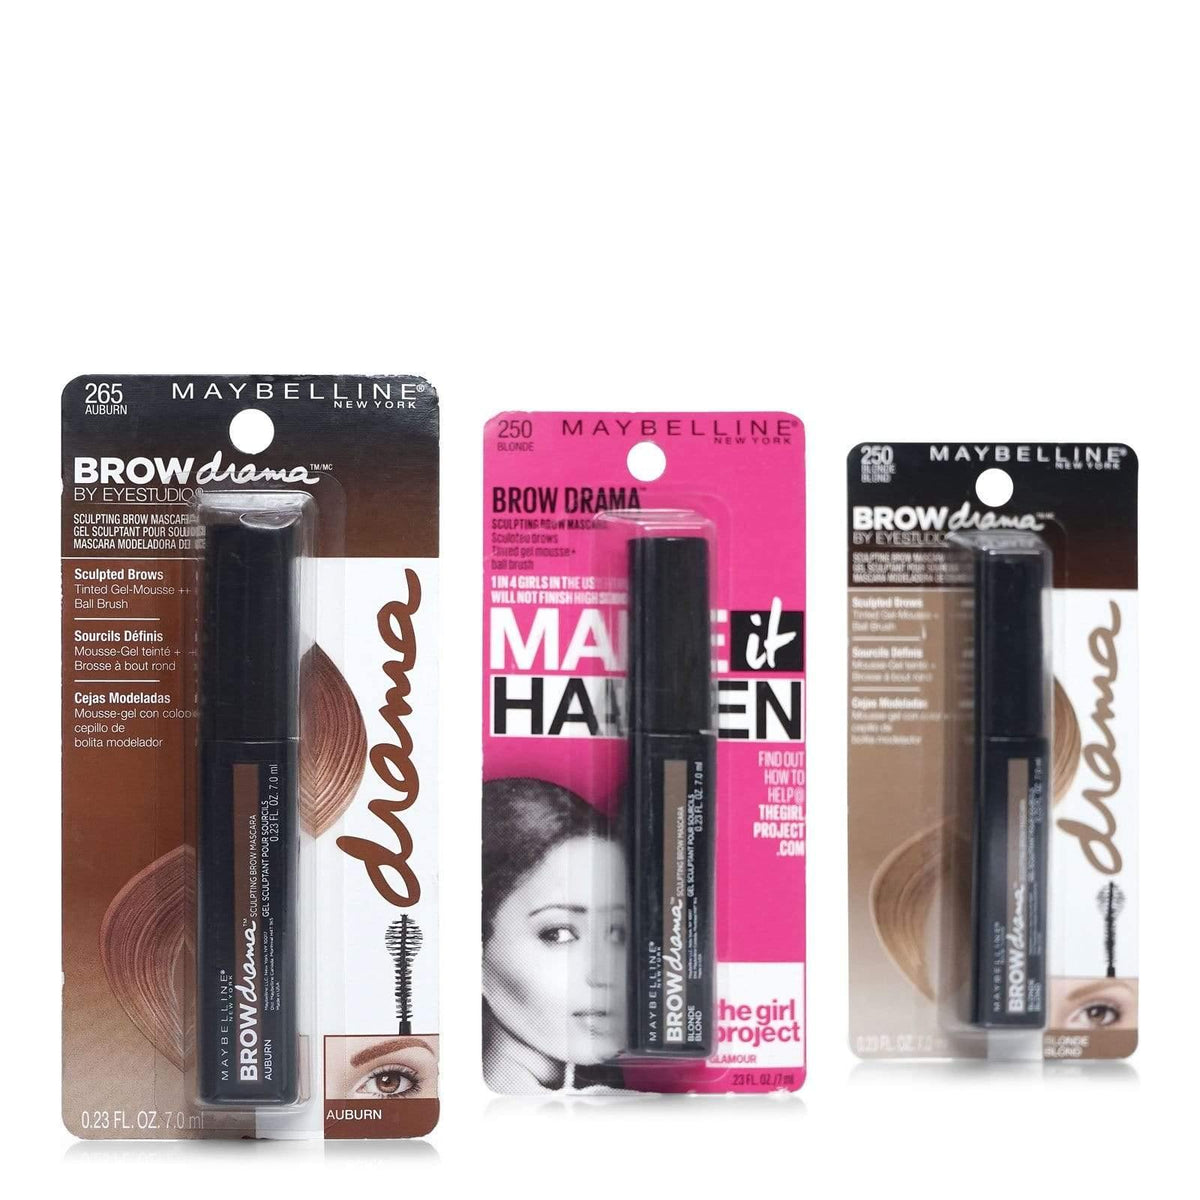 Maybelline Brow Precise Fiber Mascara Assortment